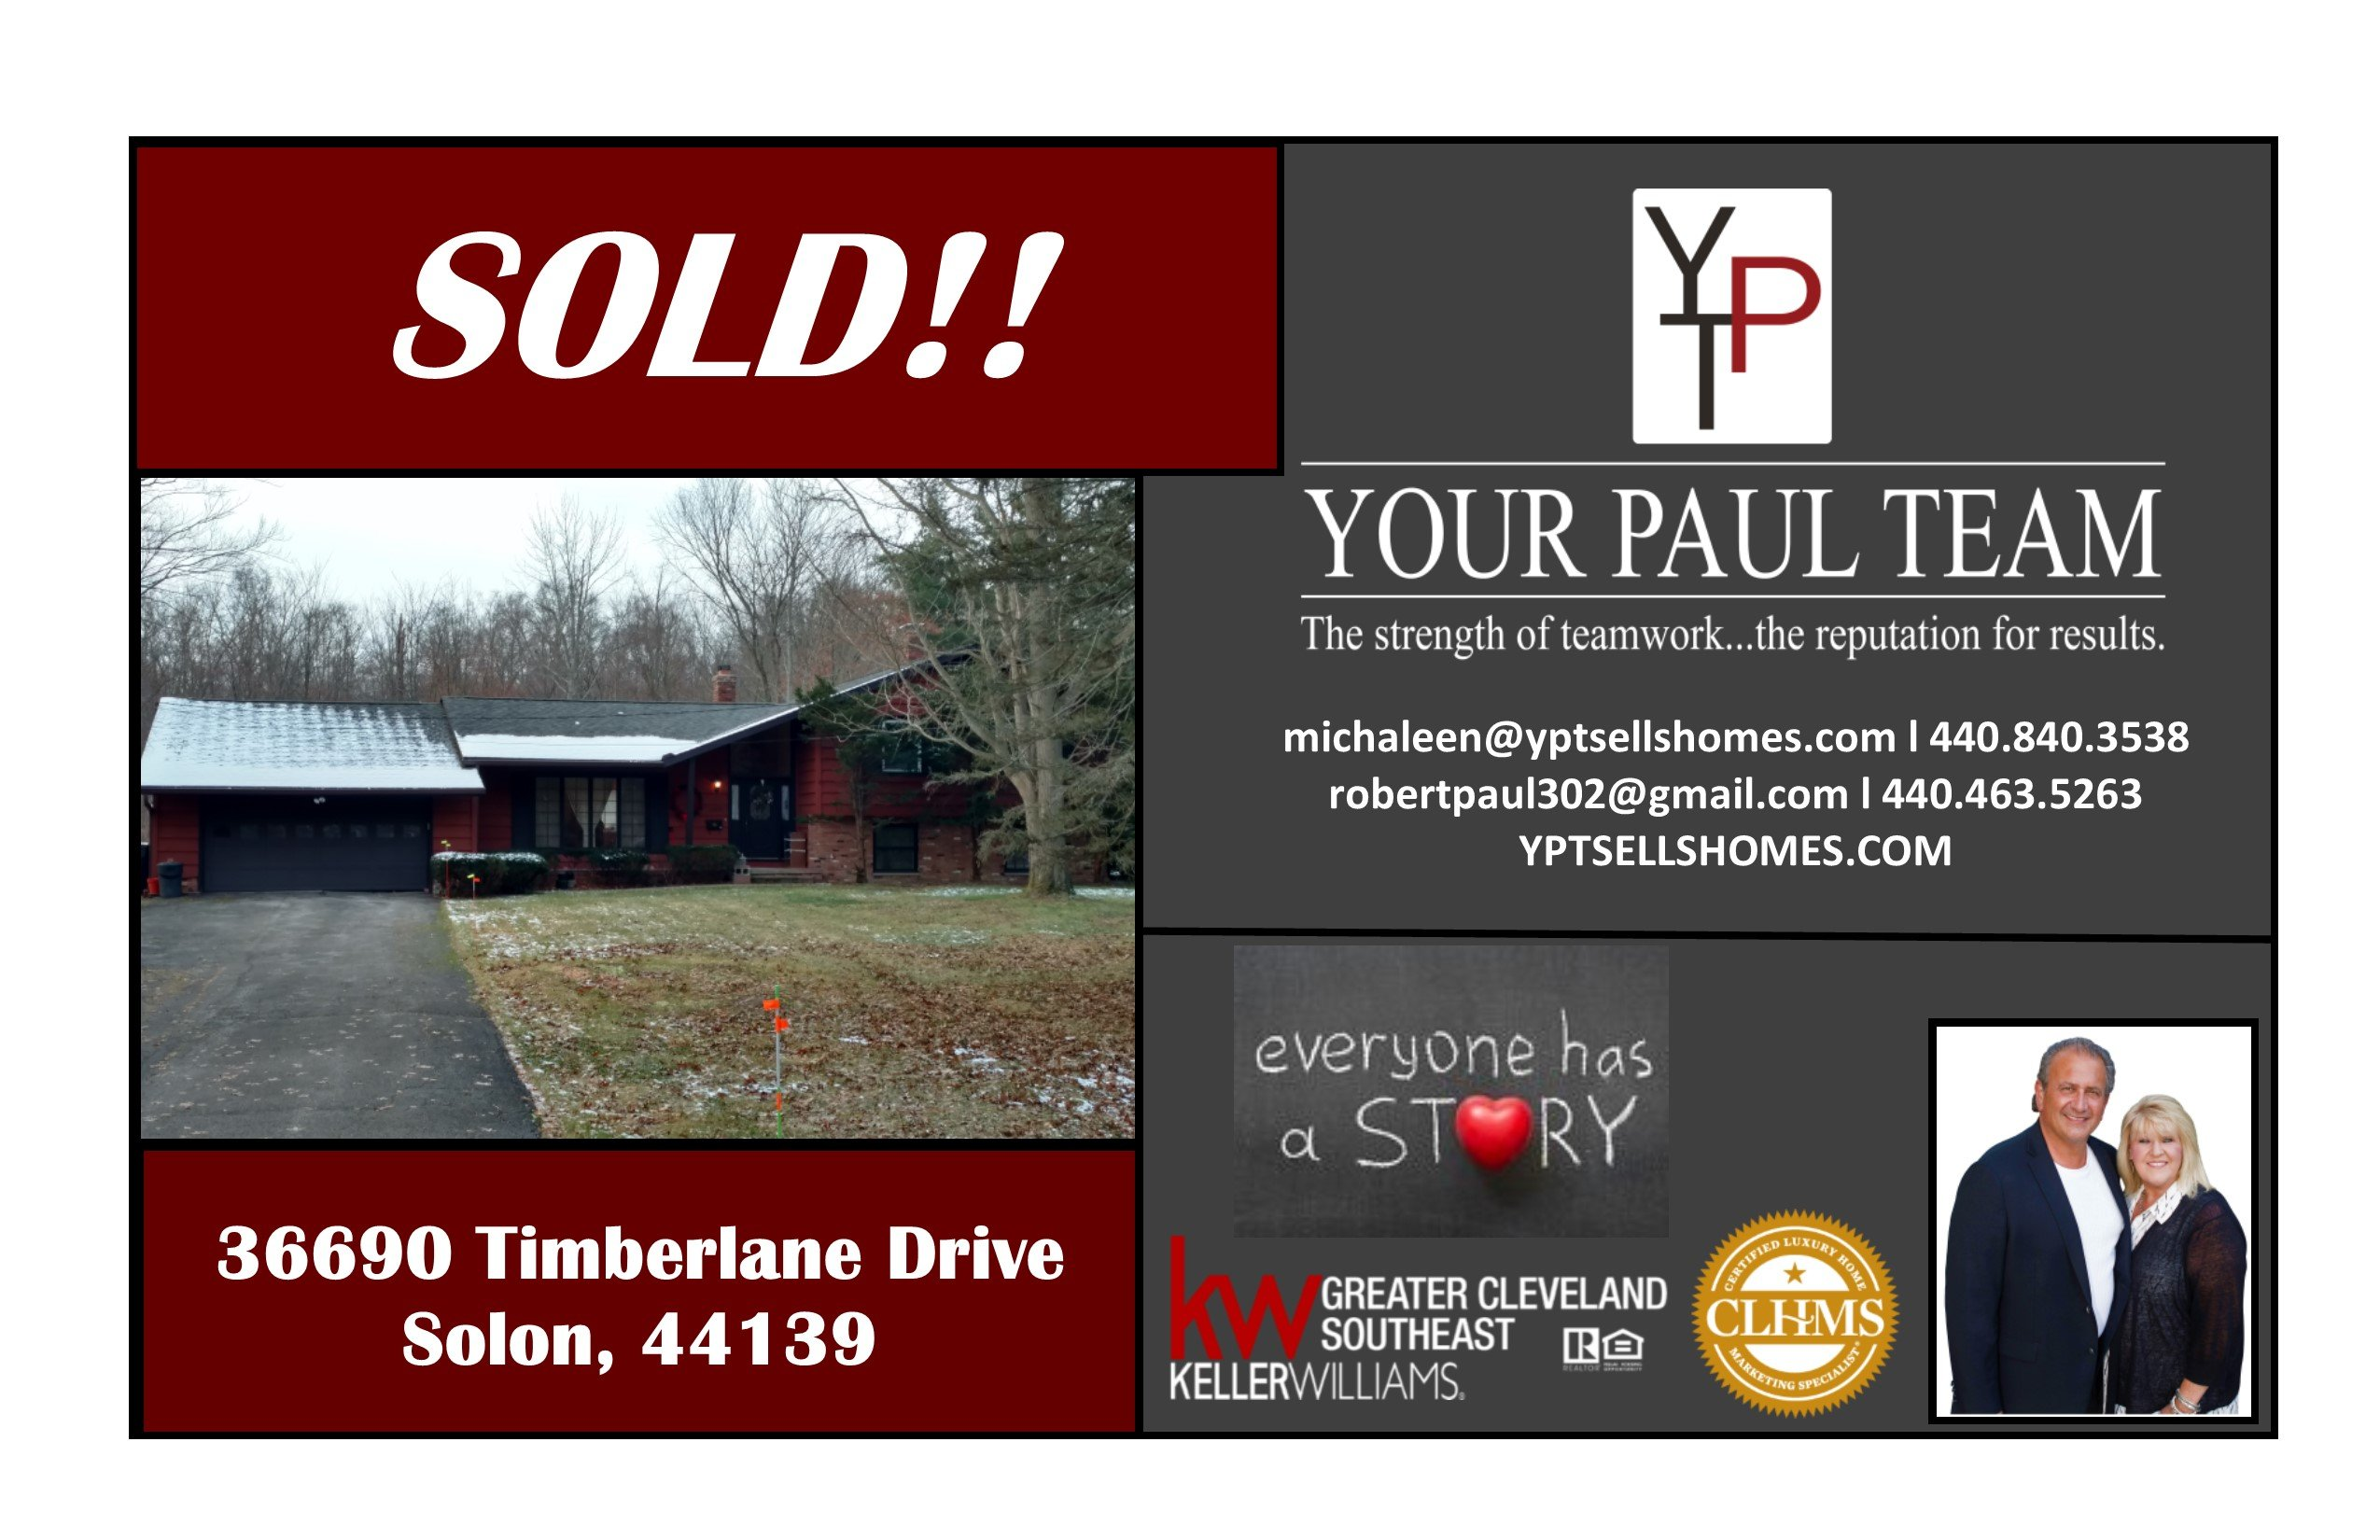 SOLD!!! – 36690 Timberlane Drive, Solon